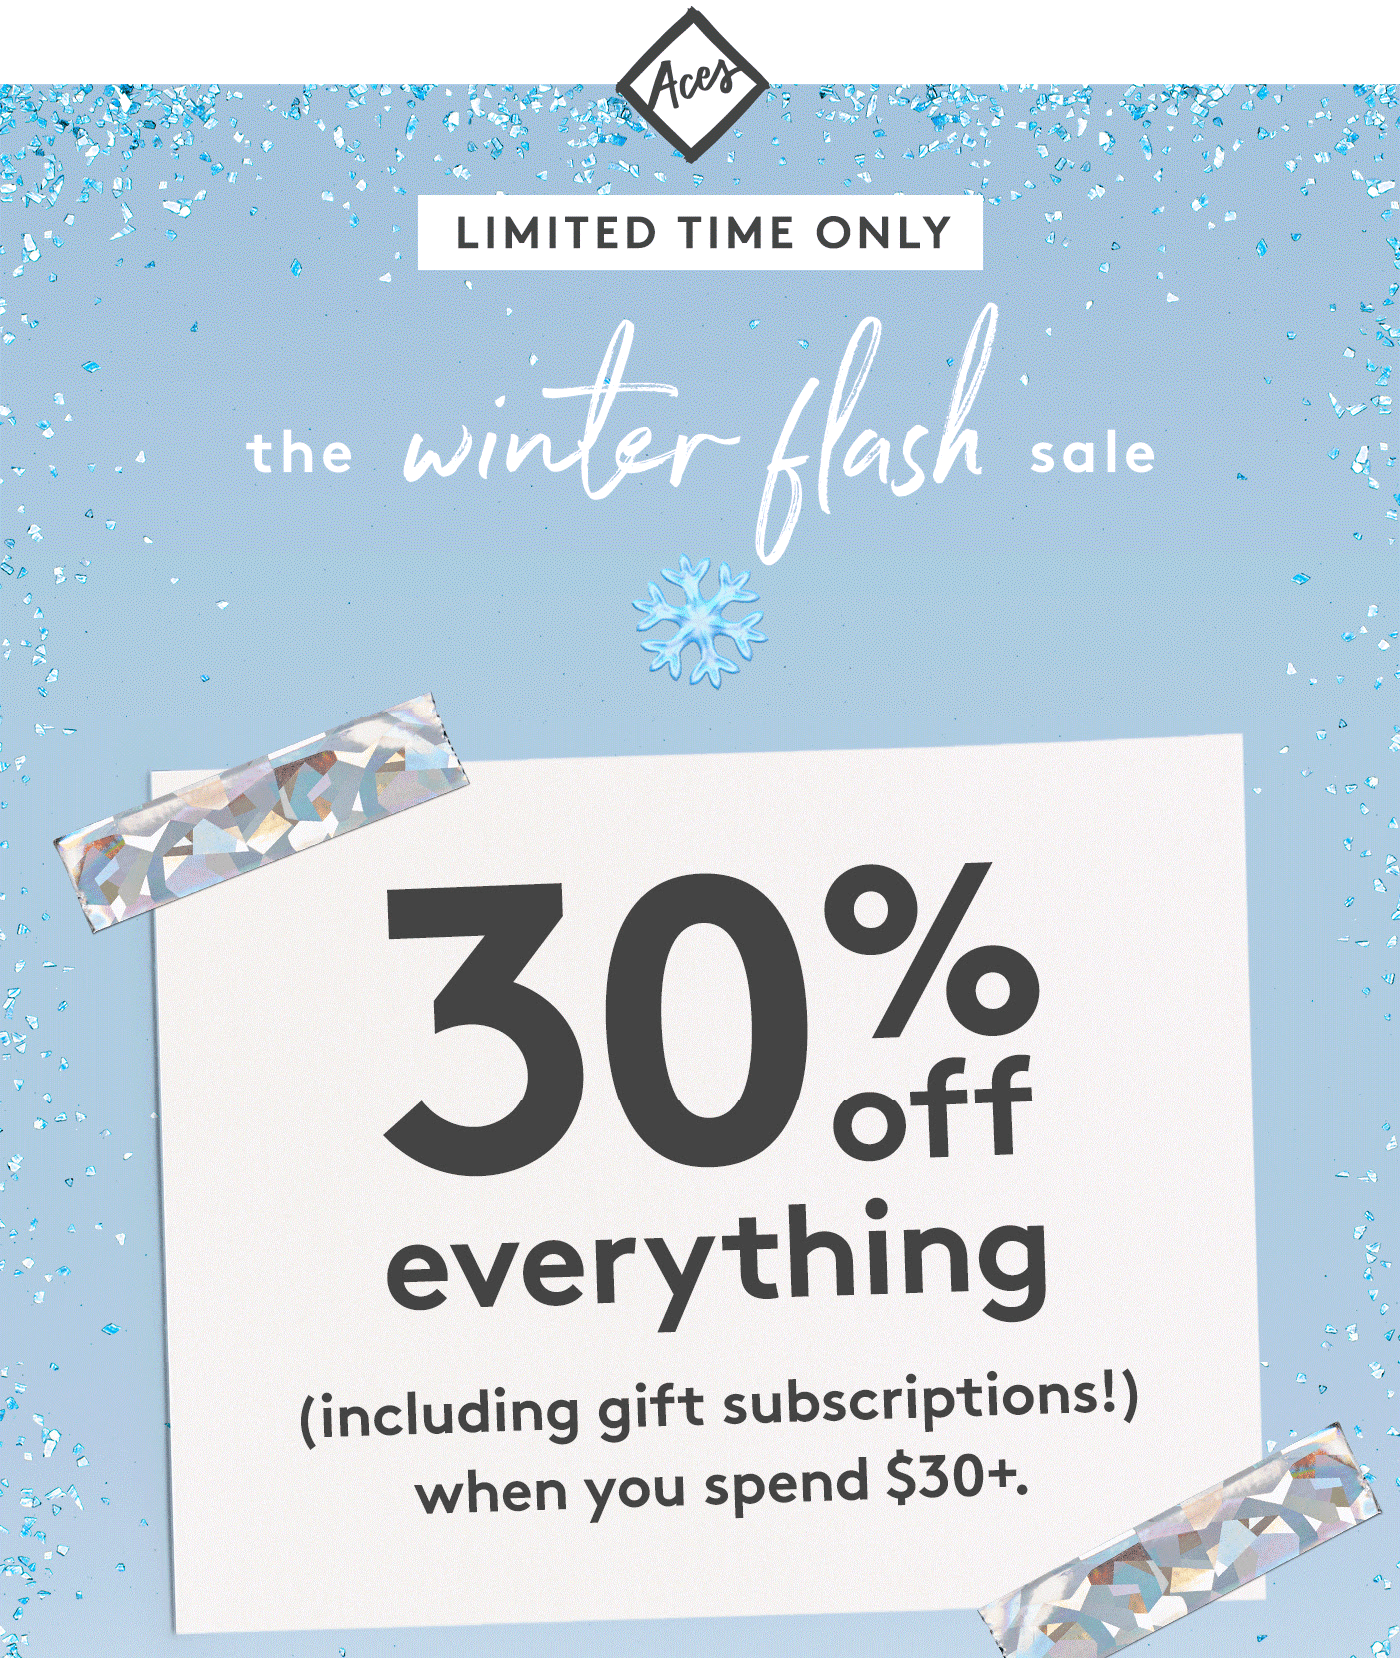 Birchbox Winter Flash Sale: ACES Save 30% Off Sitewide!